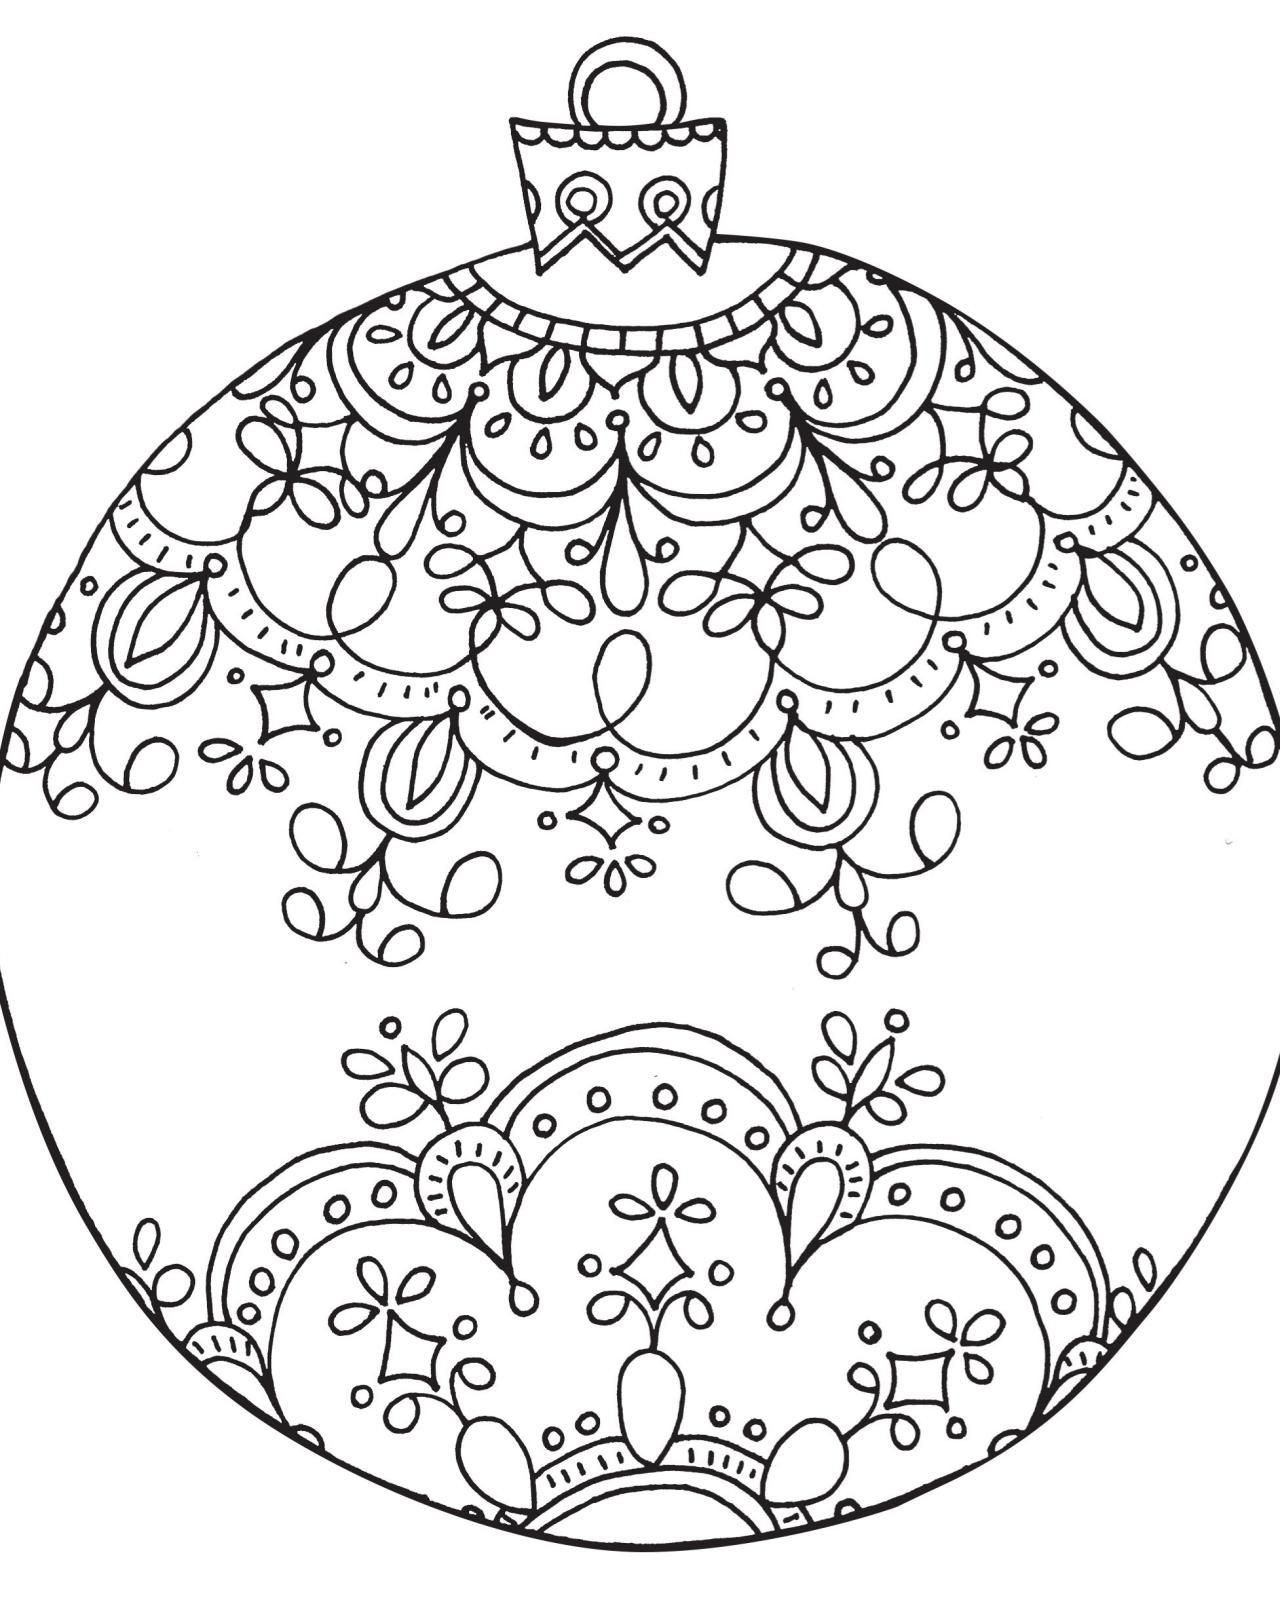 Printable Mandala Coloring Pages Pdf Coloring Pages Coloringree Printable Snow Glo Mandala Coloring Pages Free Printable Coloring Pages Coloring Pages For Kids